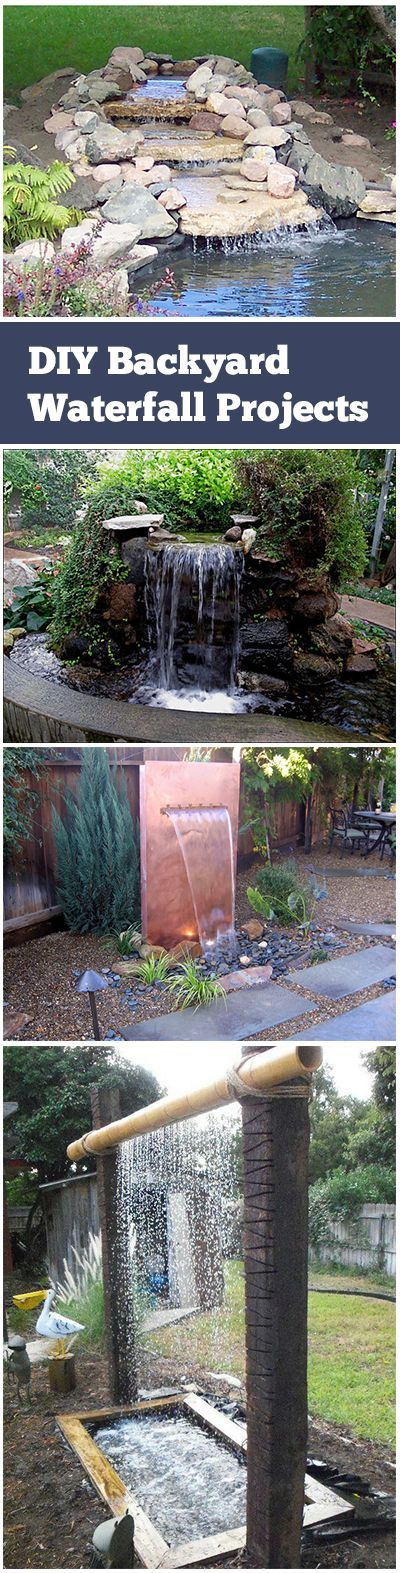 137 best images about diy water fountains on pinterest for Diy ponds water features